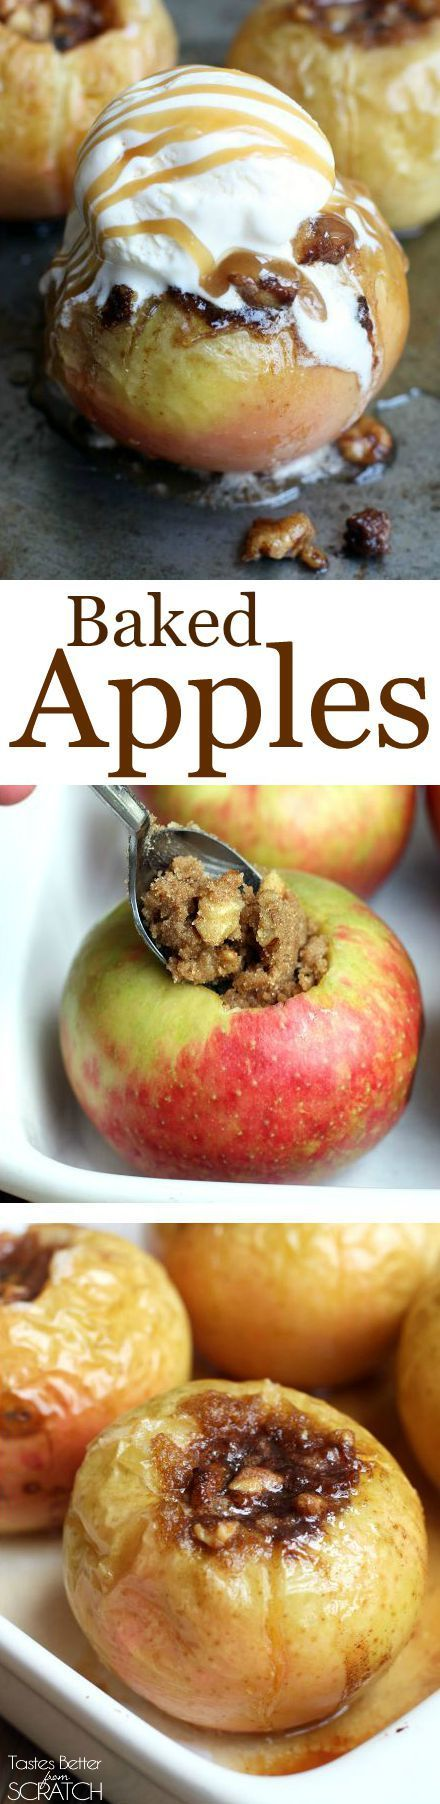 Crisp apples stuffed with a brown sugar, pecan mixture and baked until tender. One of my favorite healthy treats! Recipe from Tastes Better From Scratch